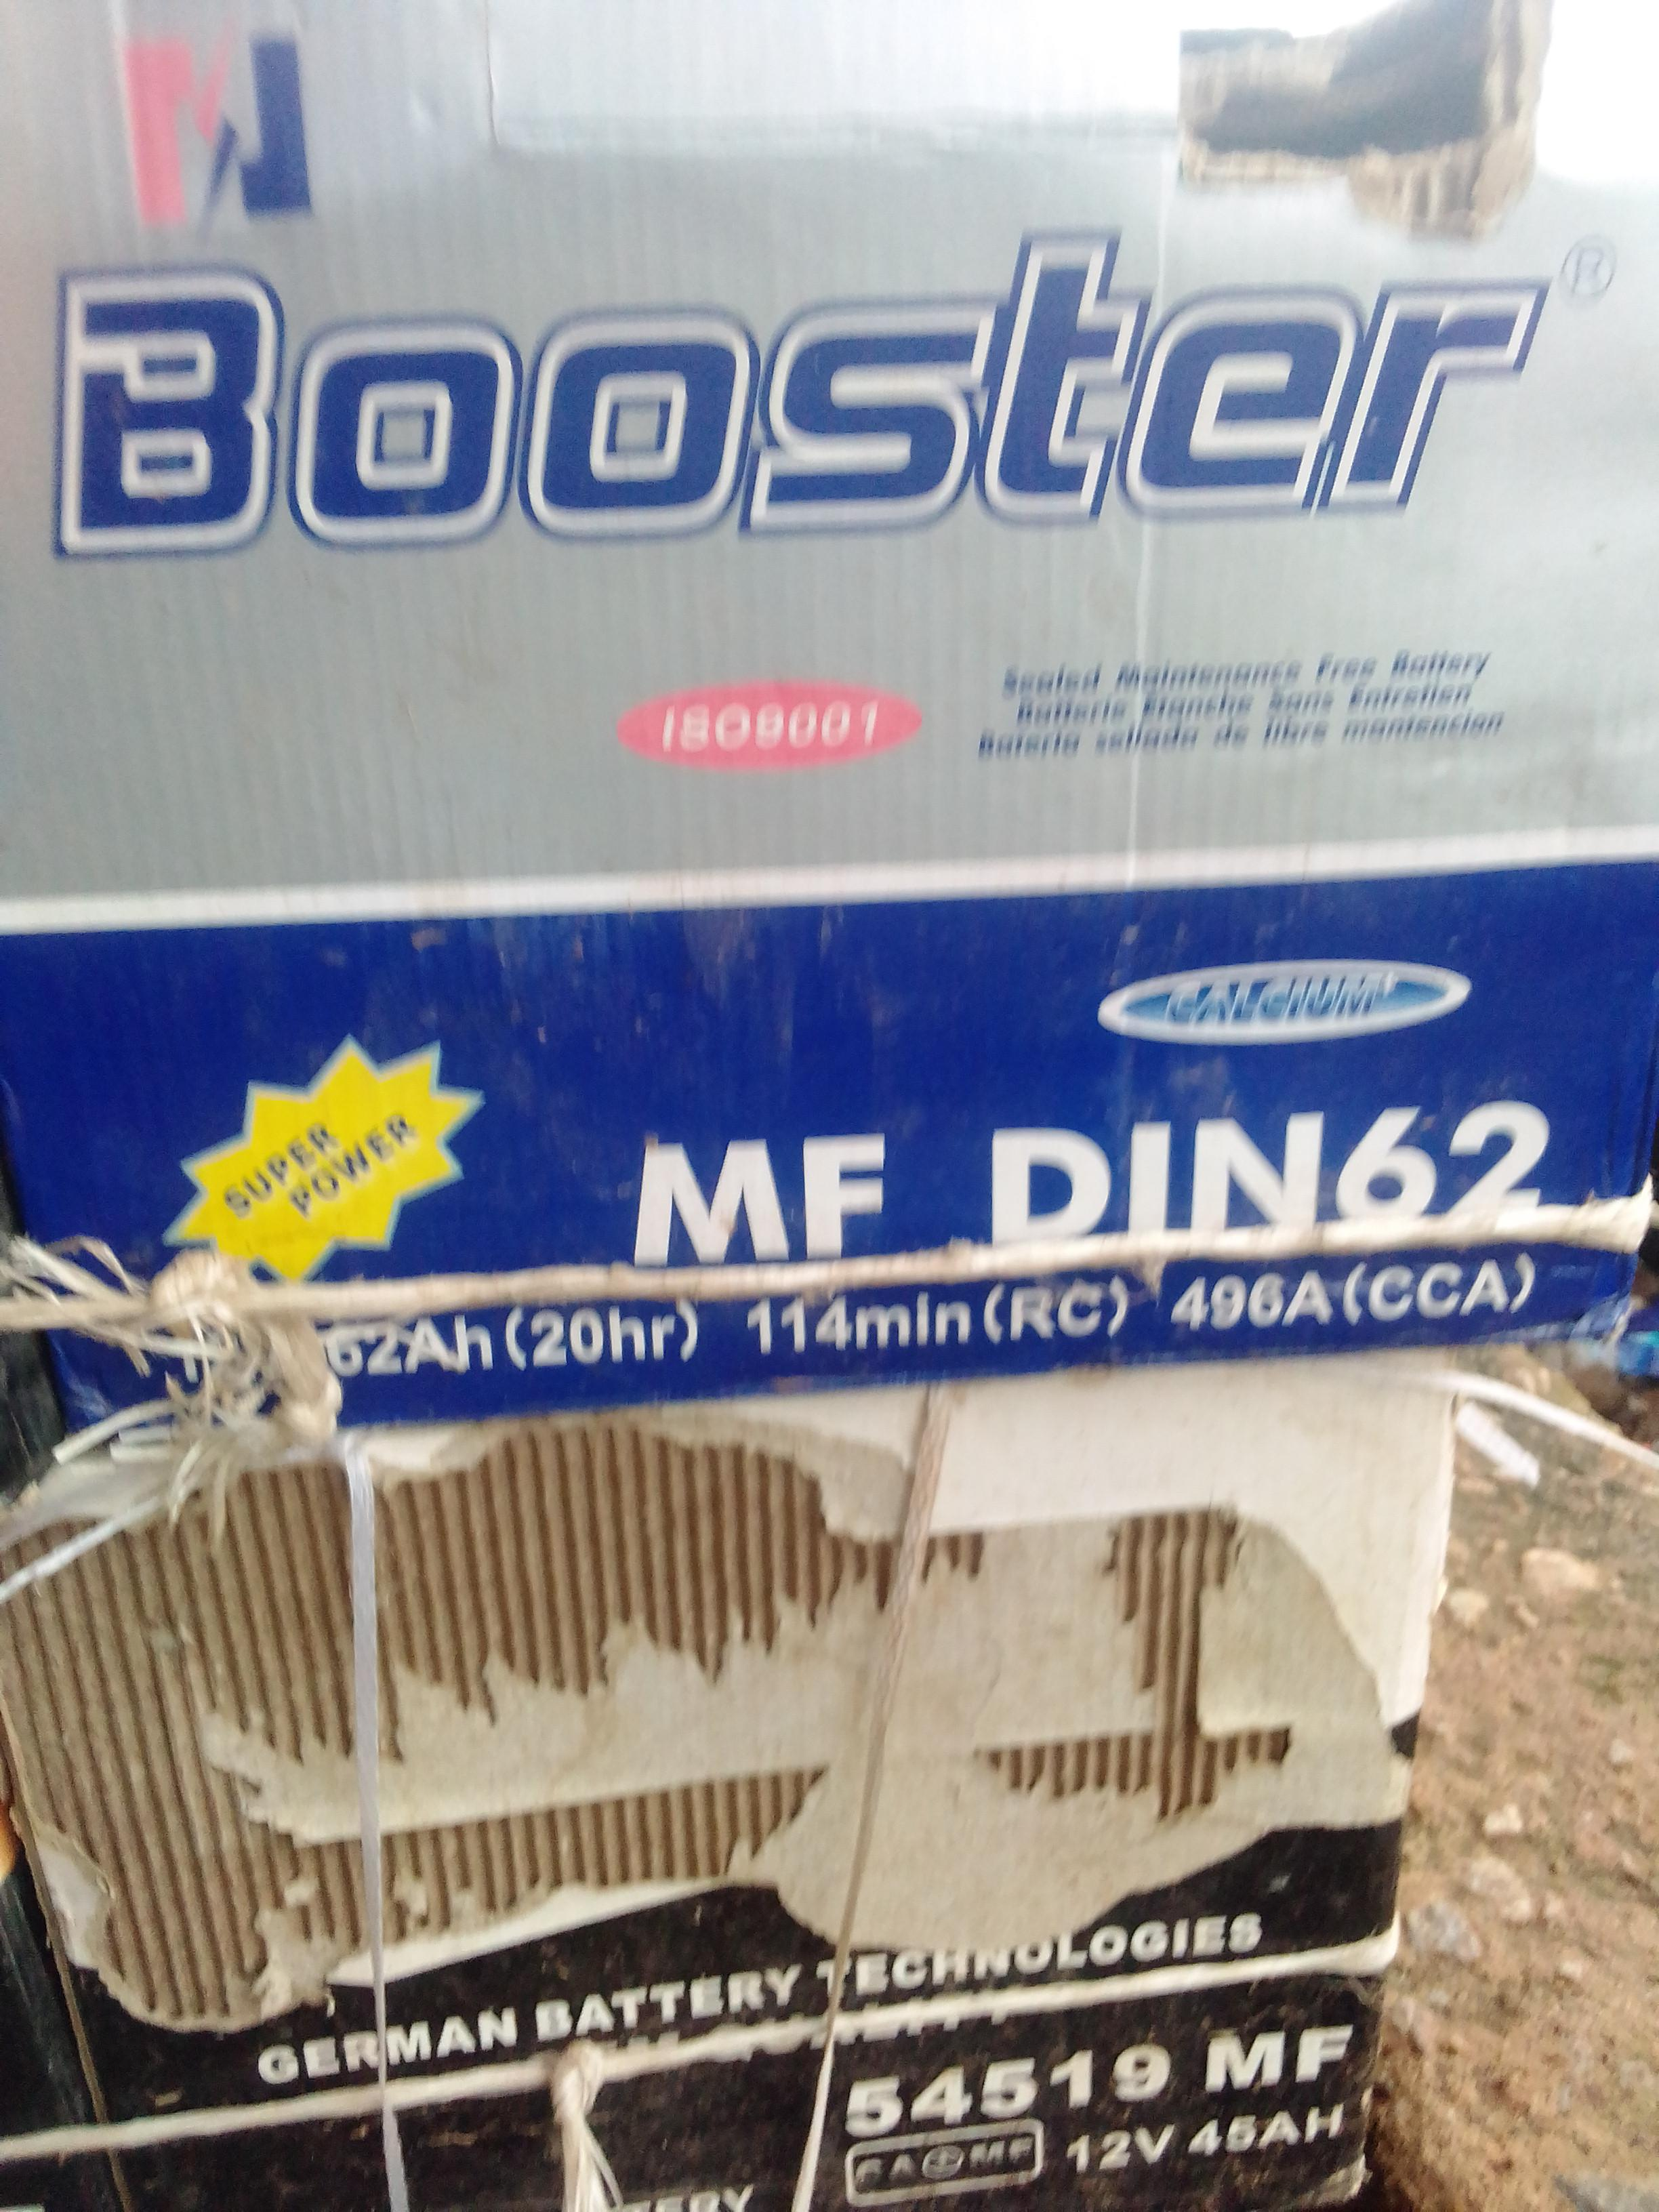 new booster battery